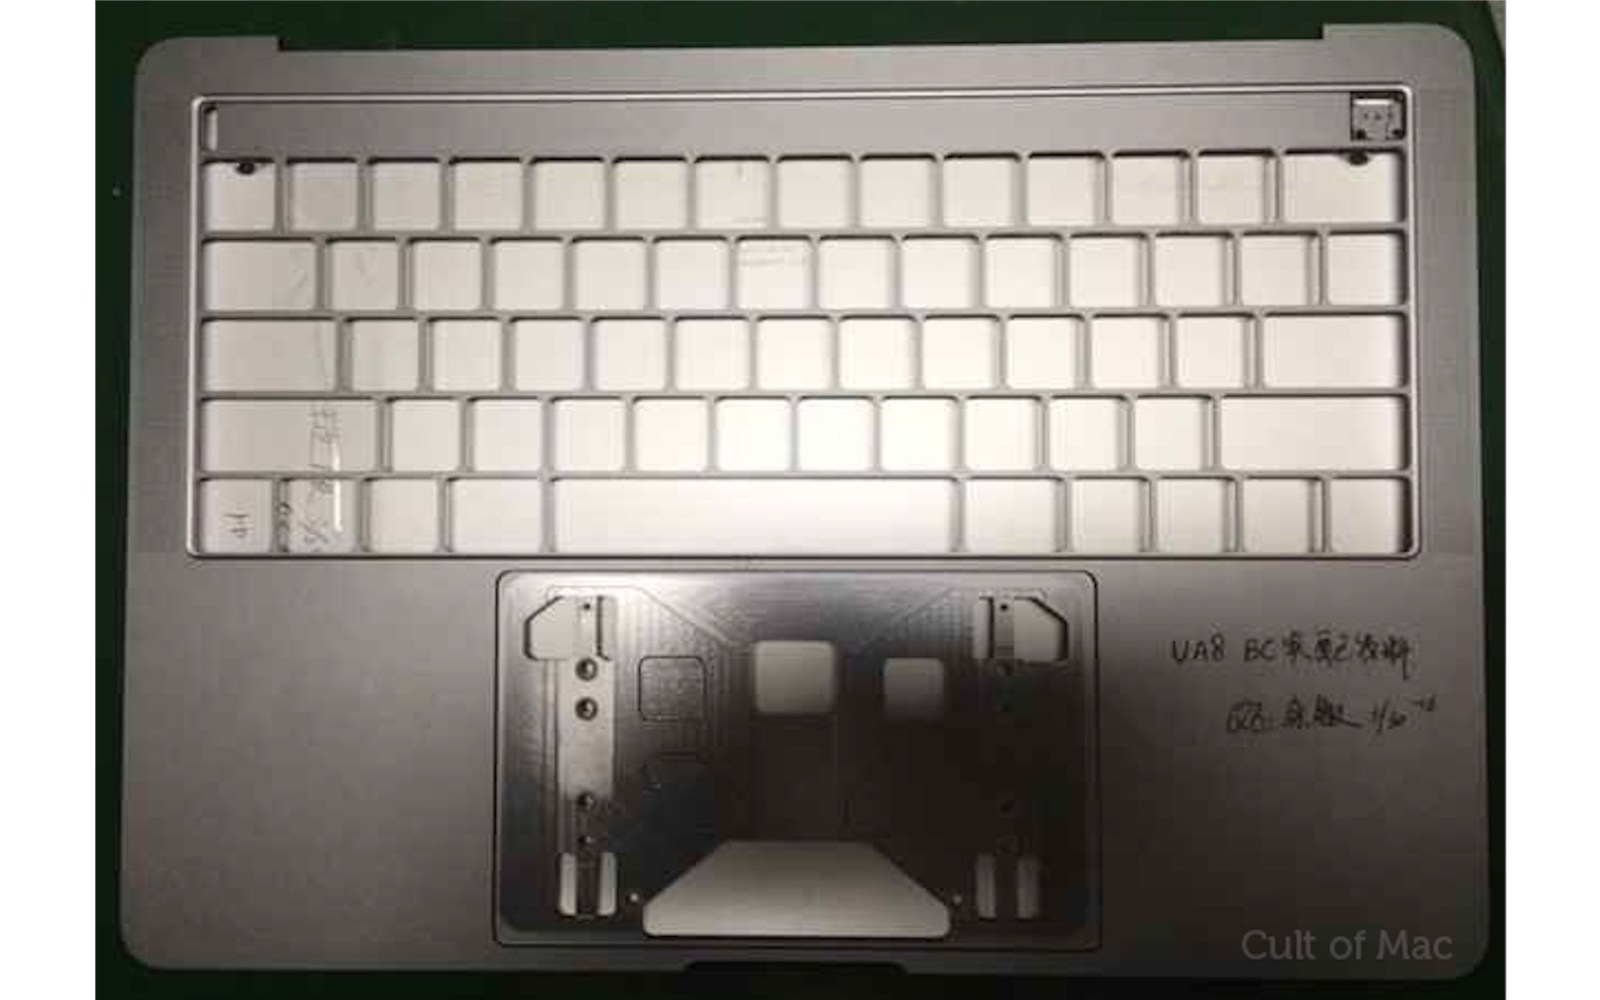 Leaked images claim to show MacBook Pro with OLED touch bar cutout, four USB-C ports